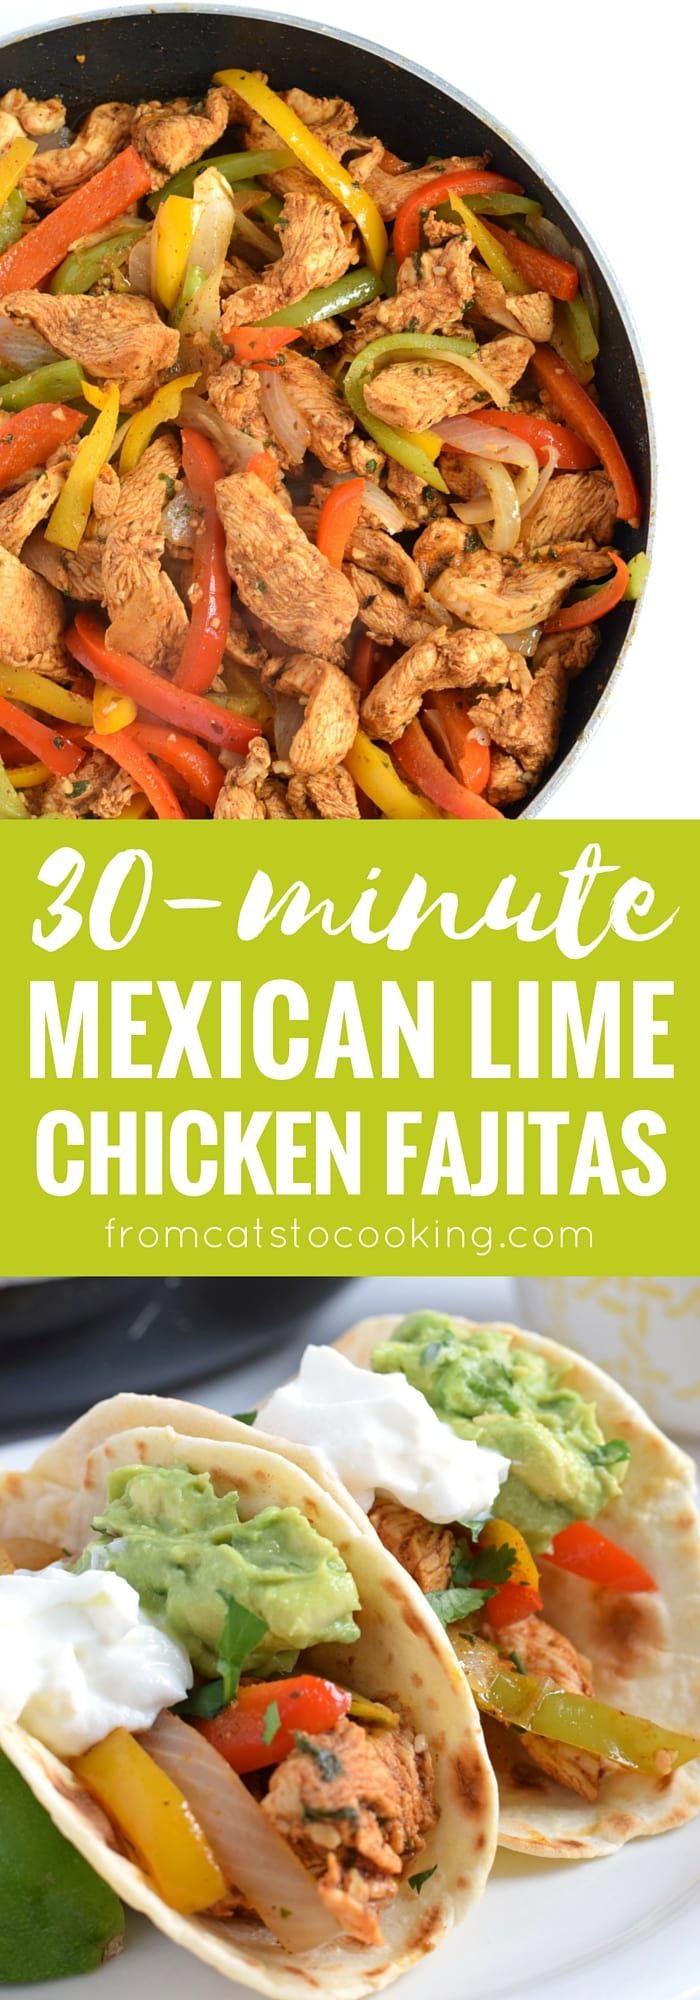 30 minute mexican lime chicken fajitas easy guacamole isabel eats make these mexican lime chicken fajitas in only 30 minutes and this forumfinder Image collections